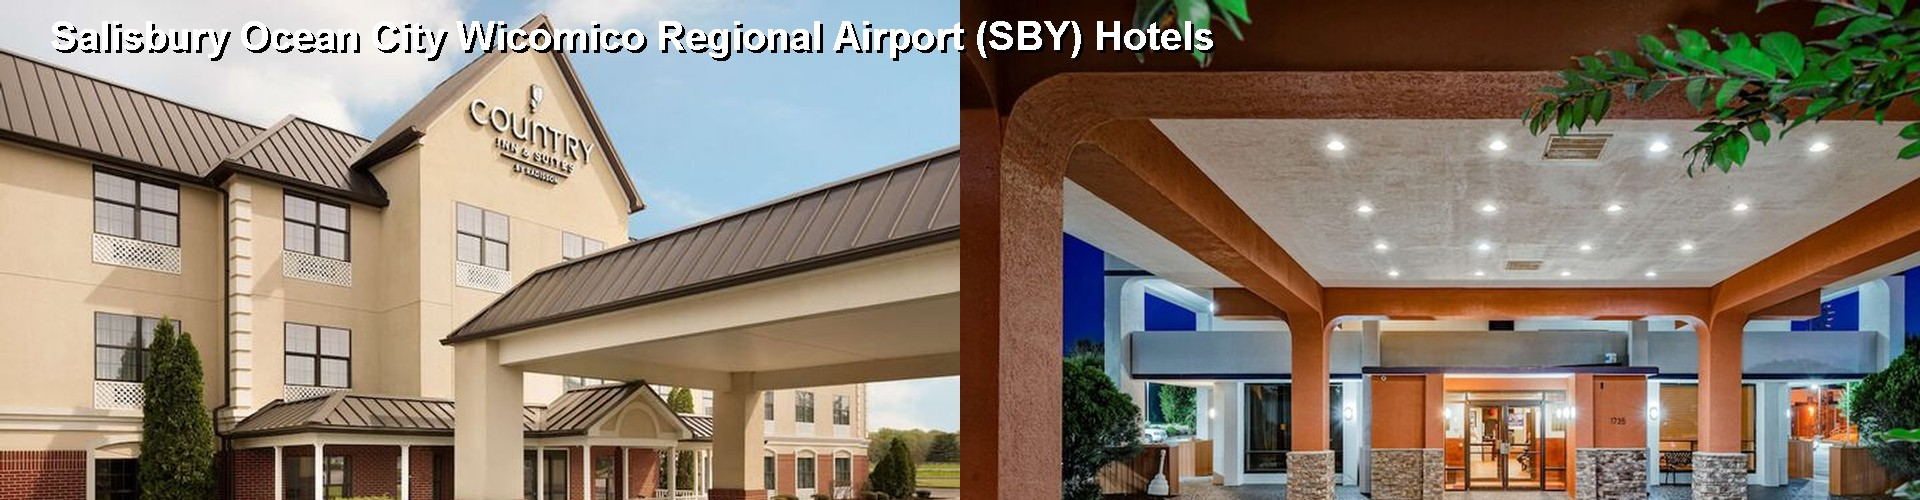 5 Best Hotels near Salisbury Ocean City Wicomico Regional Airport (SBY)